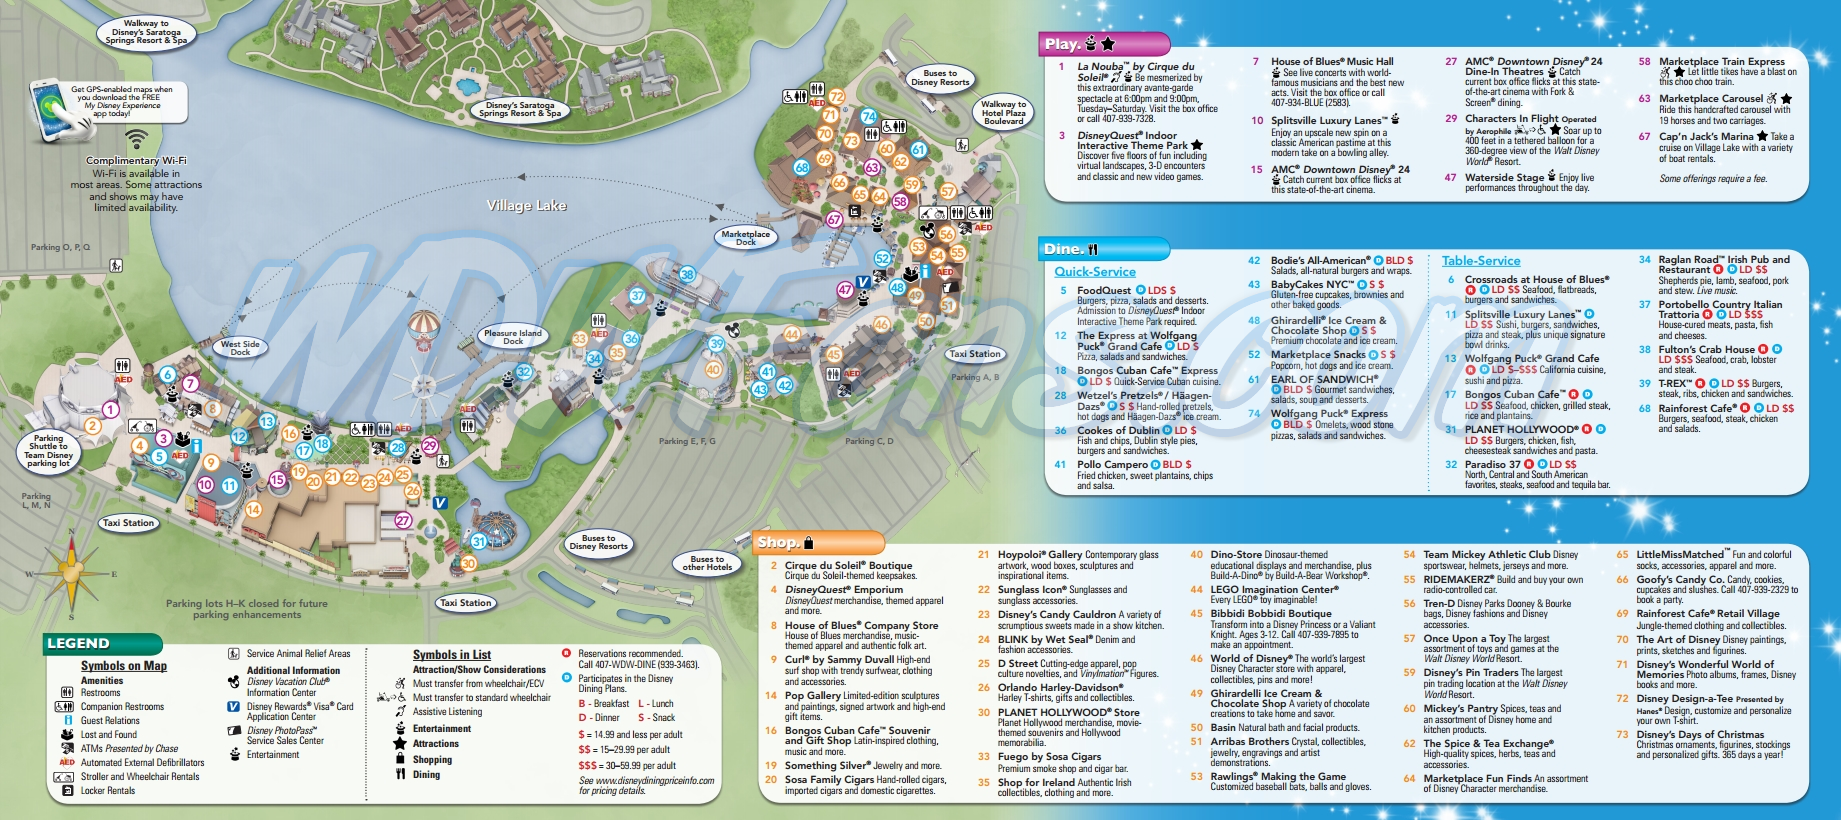 2013 Downtown Disney Map - Walt Disney World Resort Maps - WDWFans